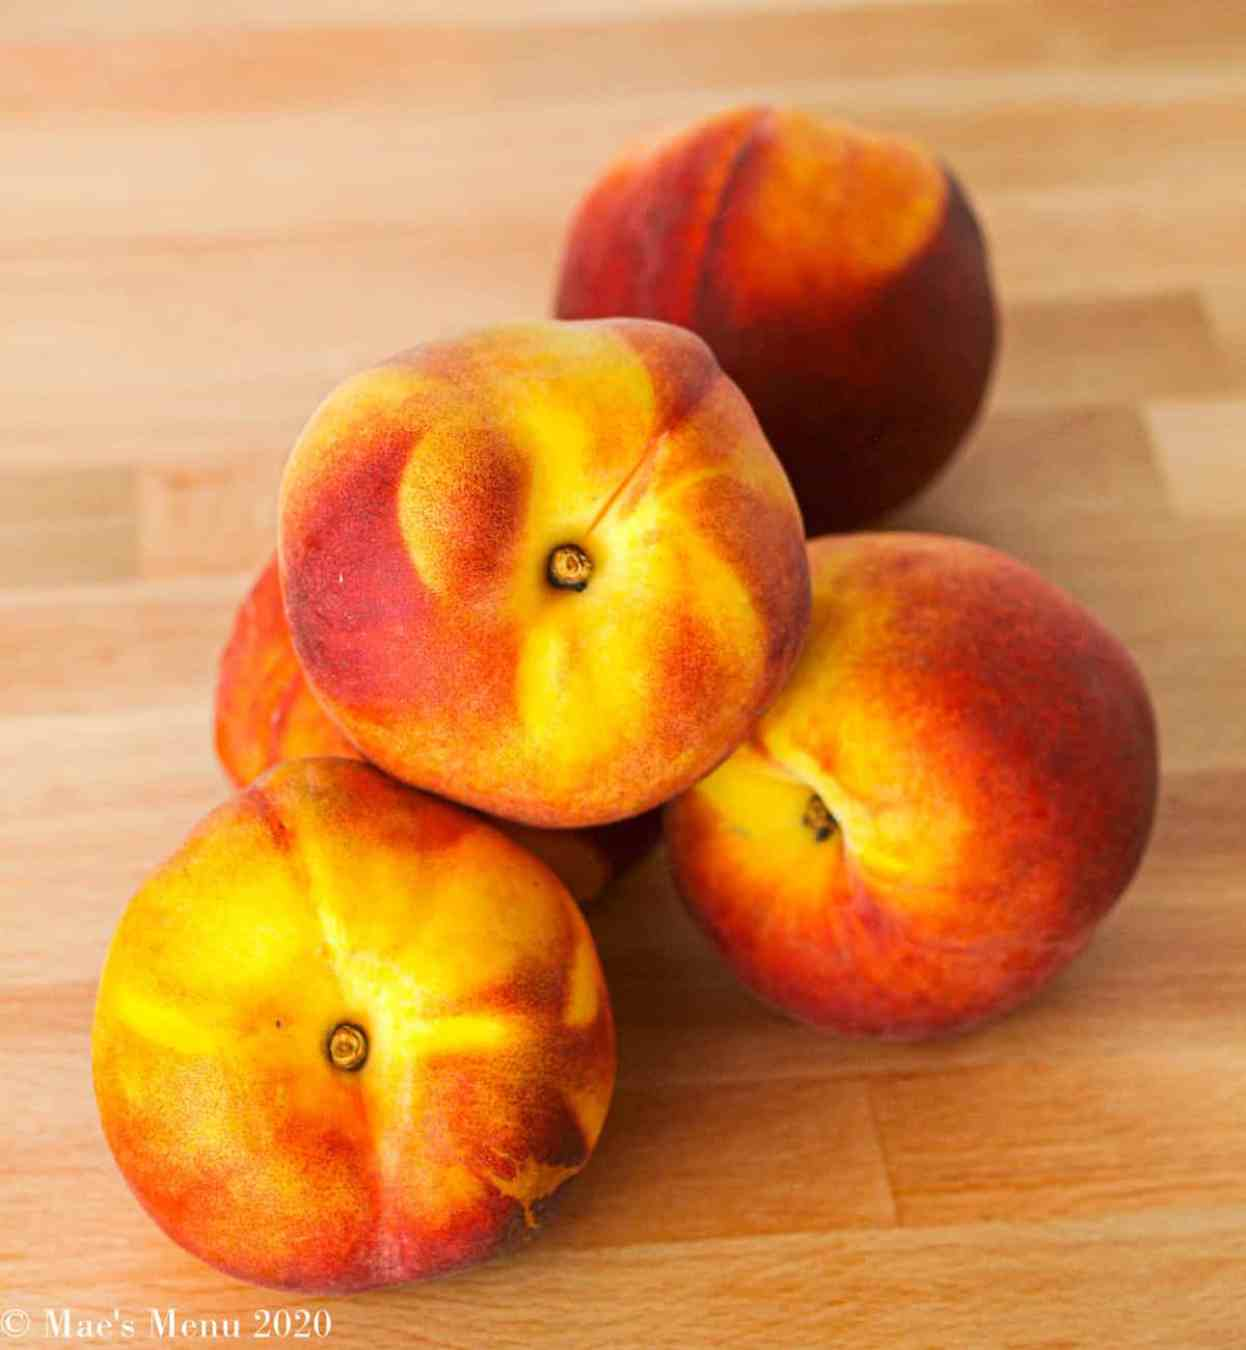 5 peaches sitting on a butcher block counter